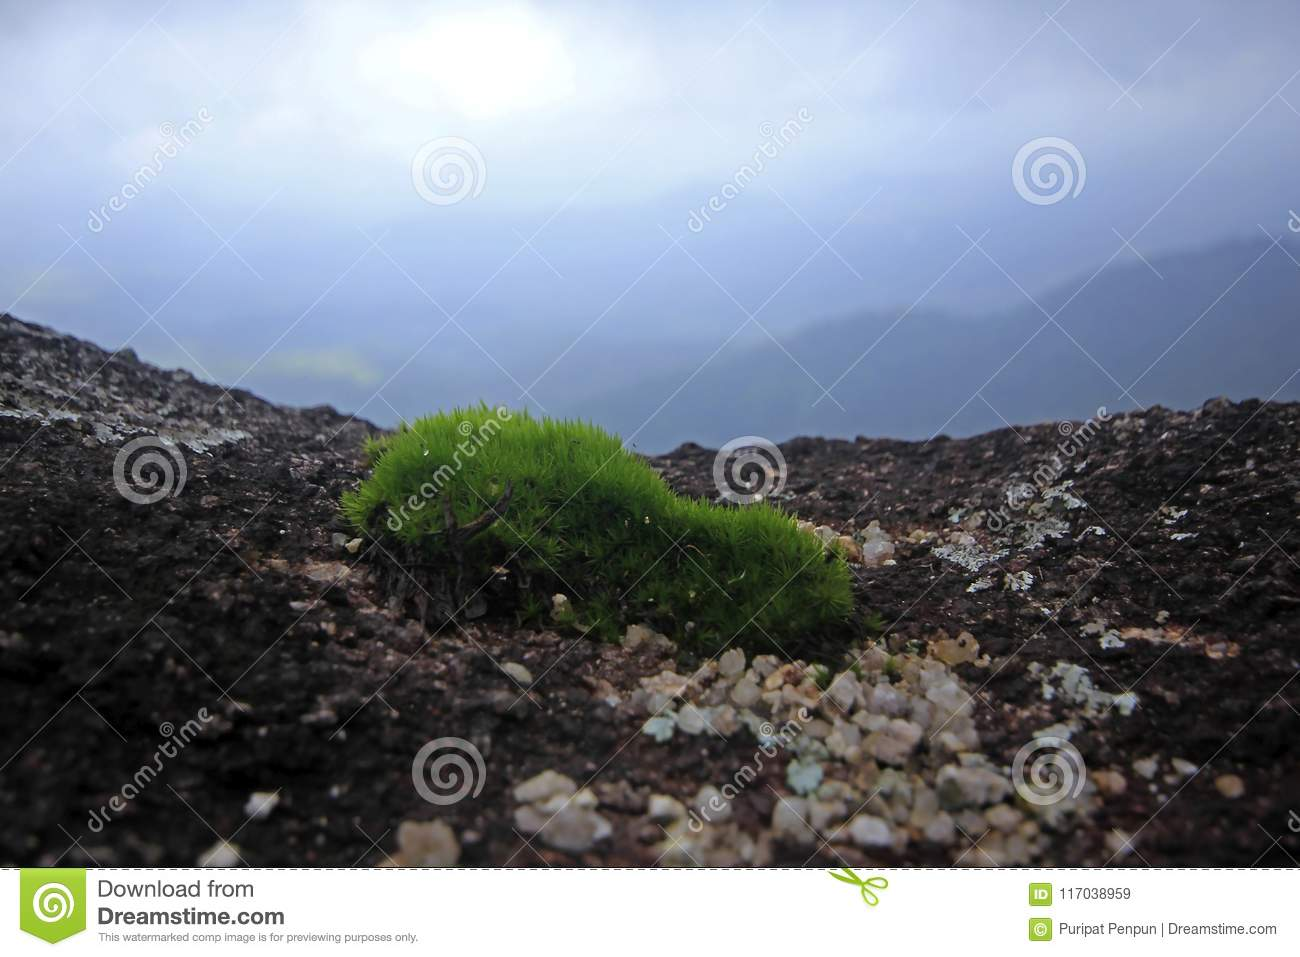 Moss green, small tree in nature on rocky ground.